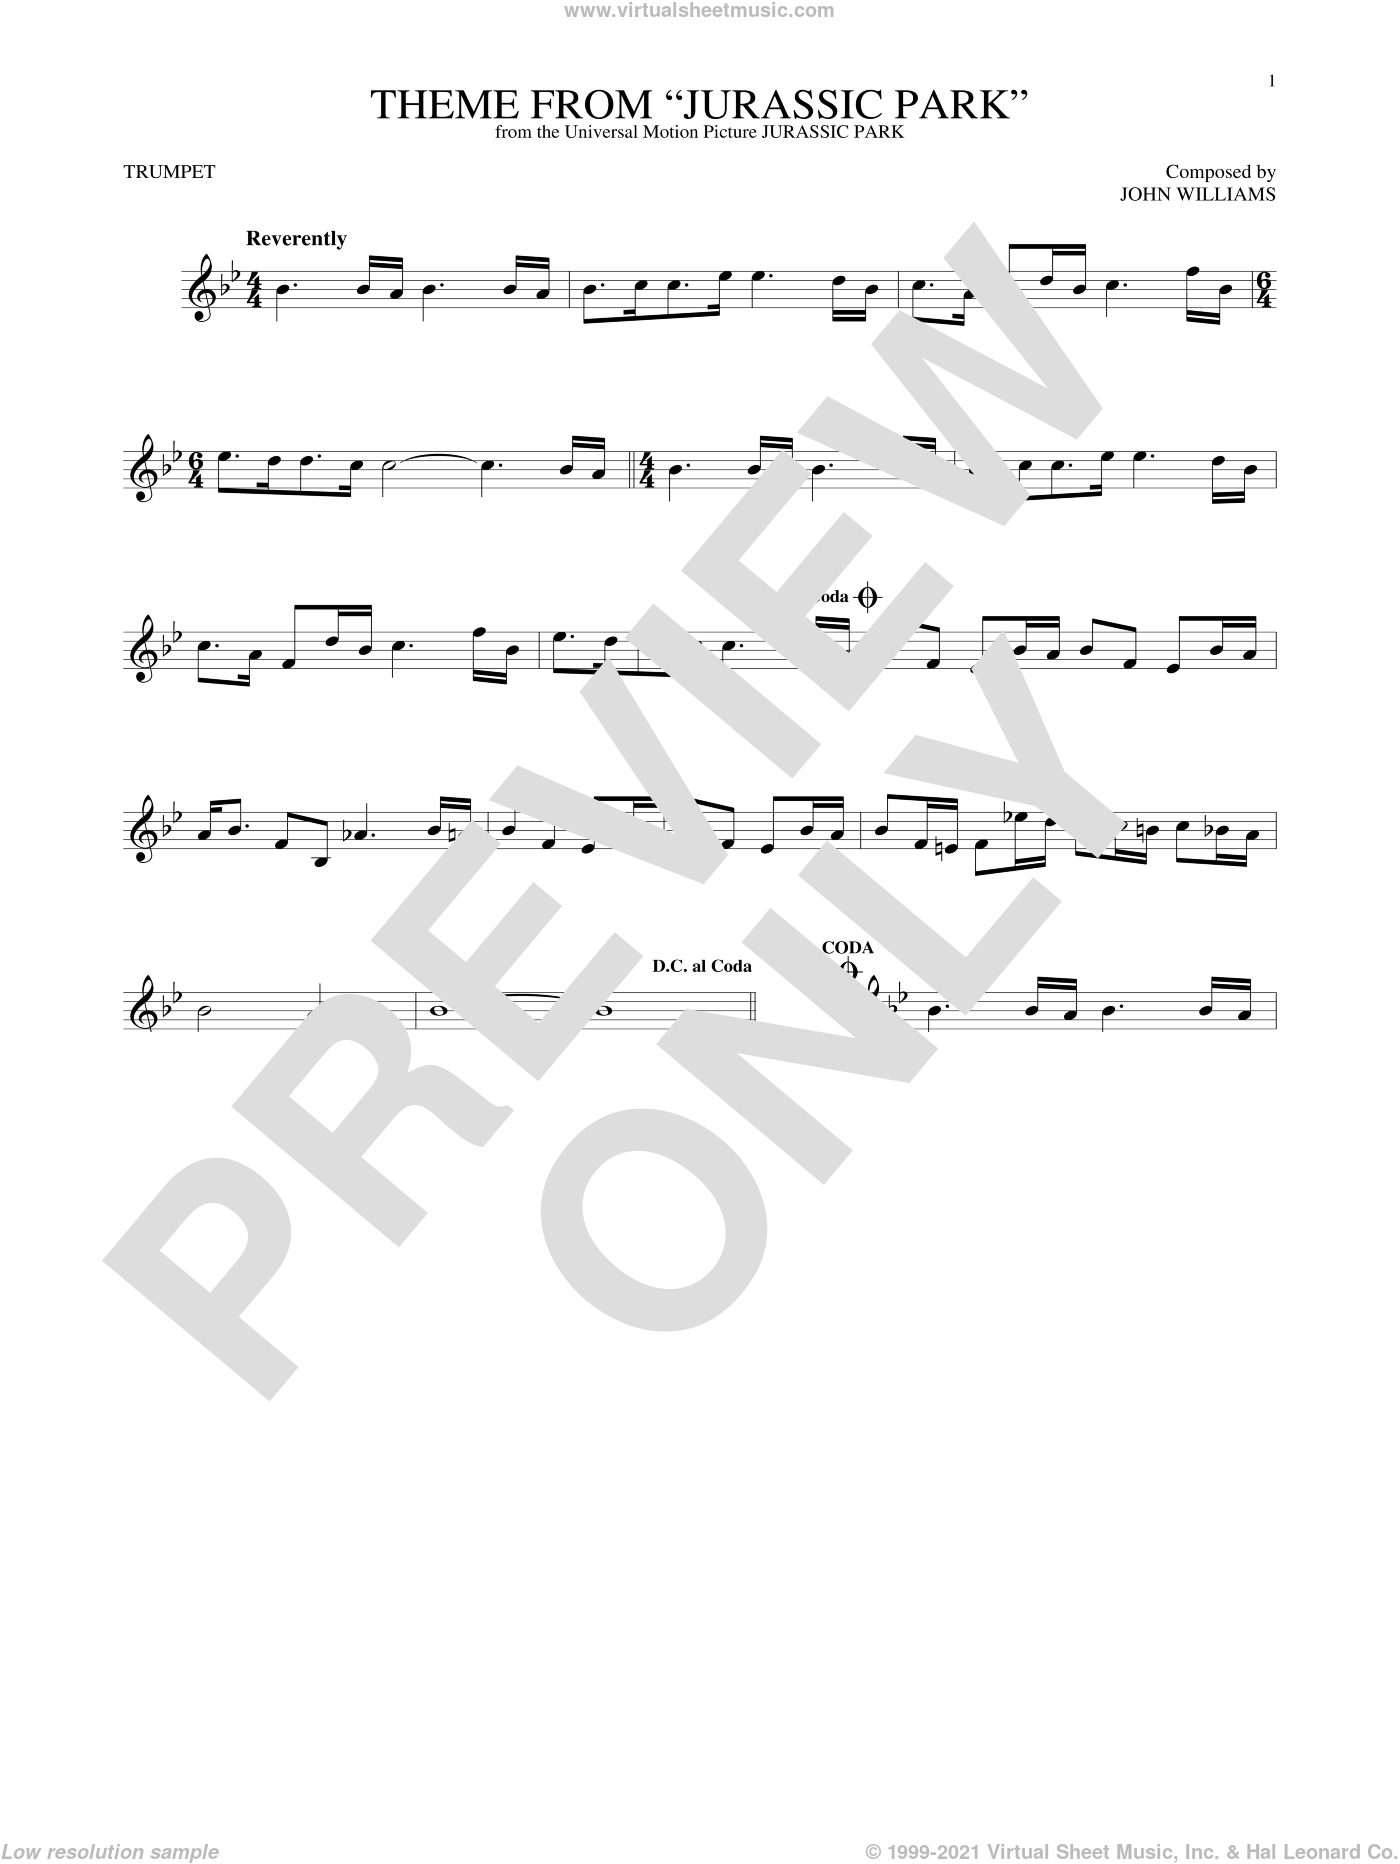 Theme From Jurassic Park sheet music for trumpet solo by John Williams. Score Image Preview.